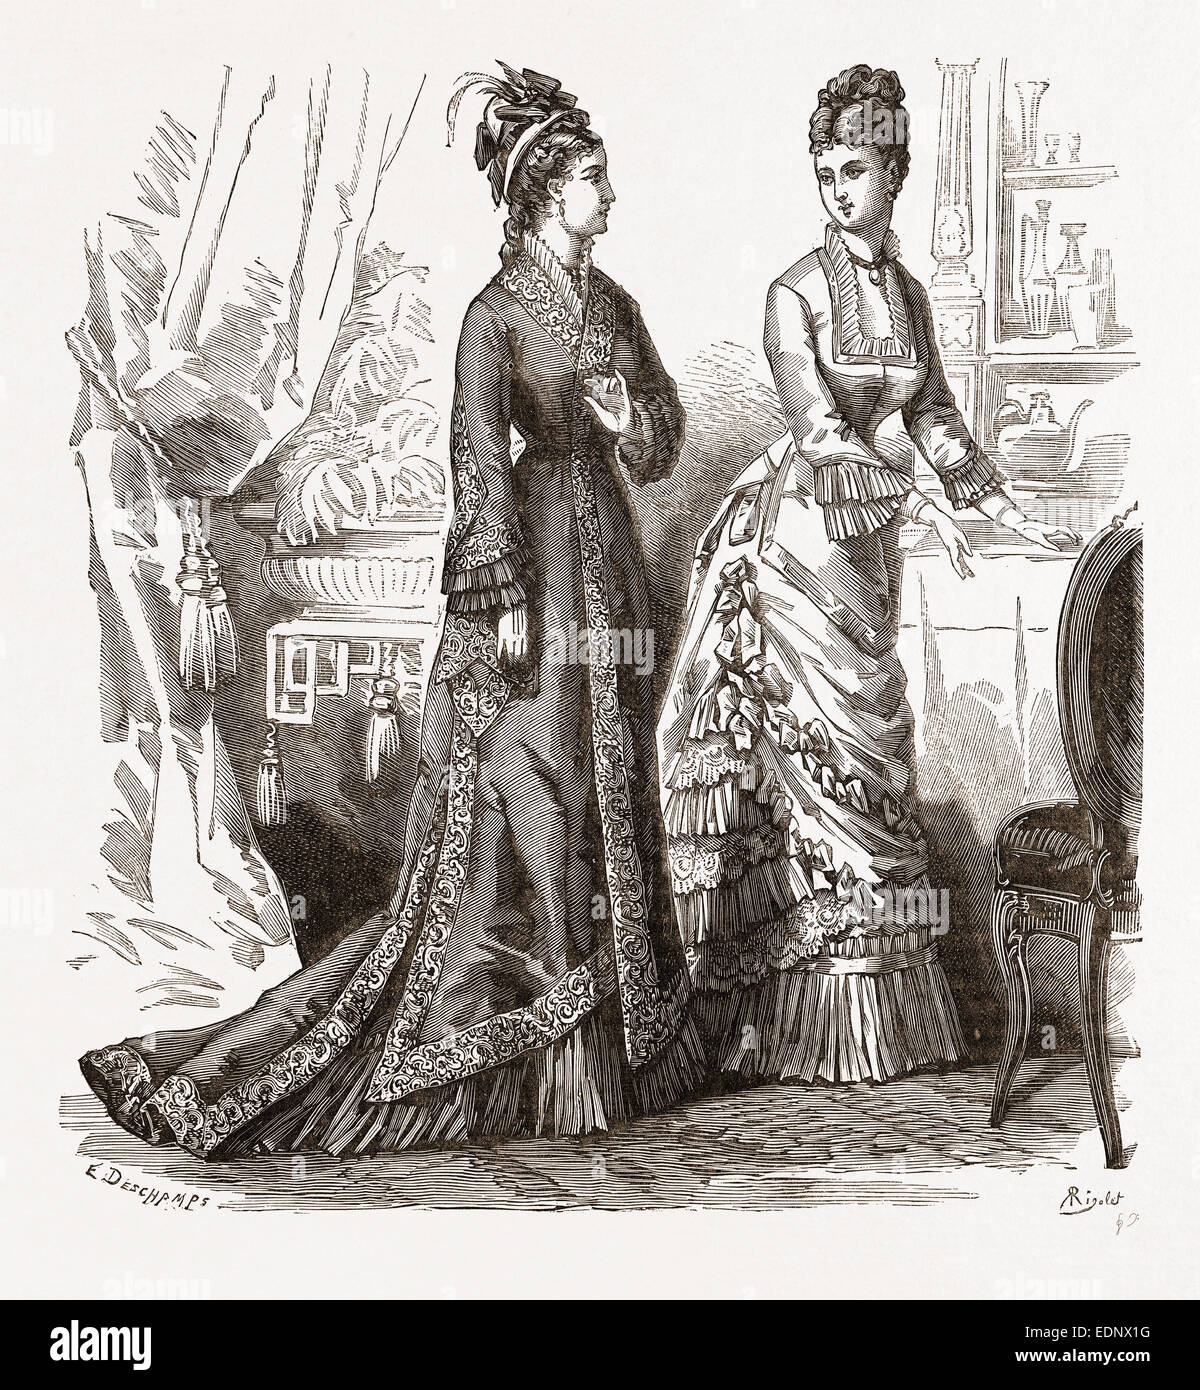 TOILETTES FOR VISITING AND CONCERTS, 19th CENTURY FASHION - Stock Image